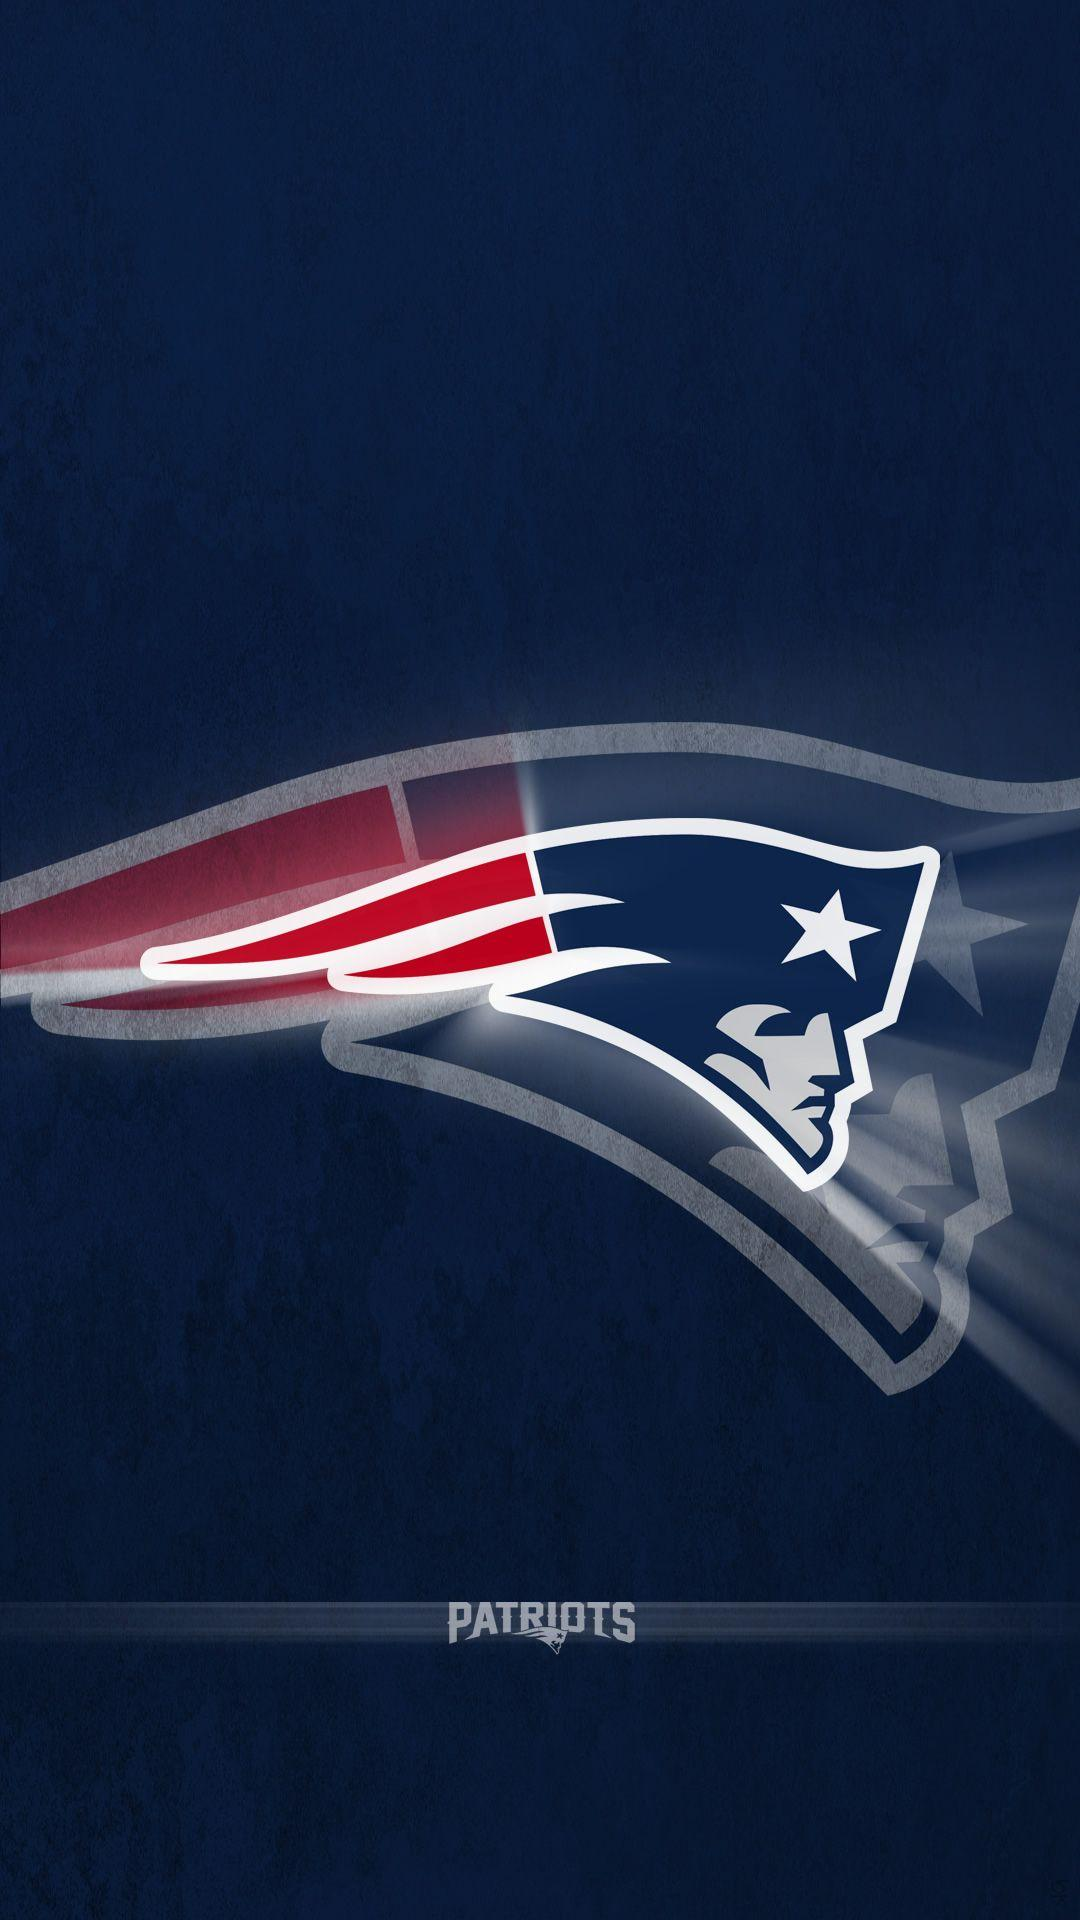 New Superbowl 2015 or Superbowl XLIX wallpaper - New England Patriots